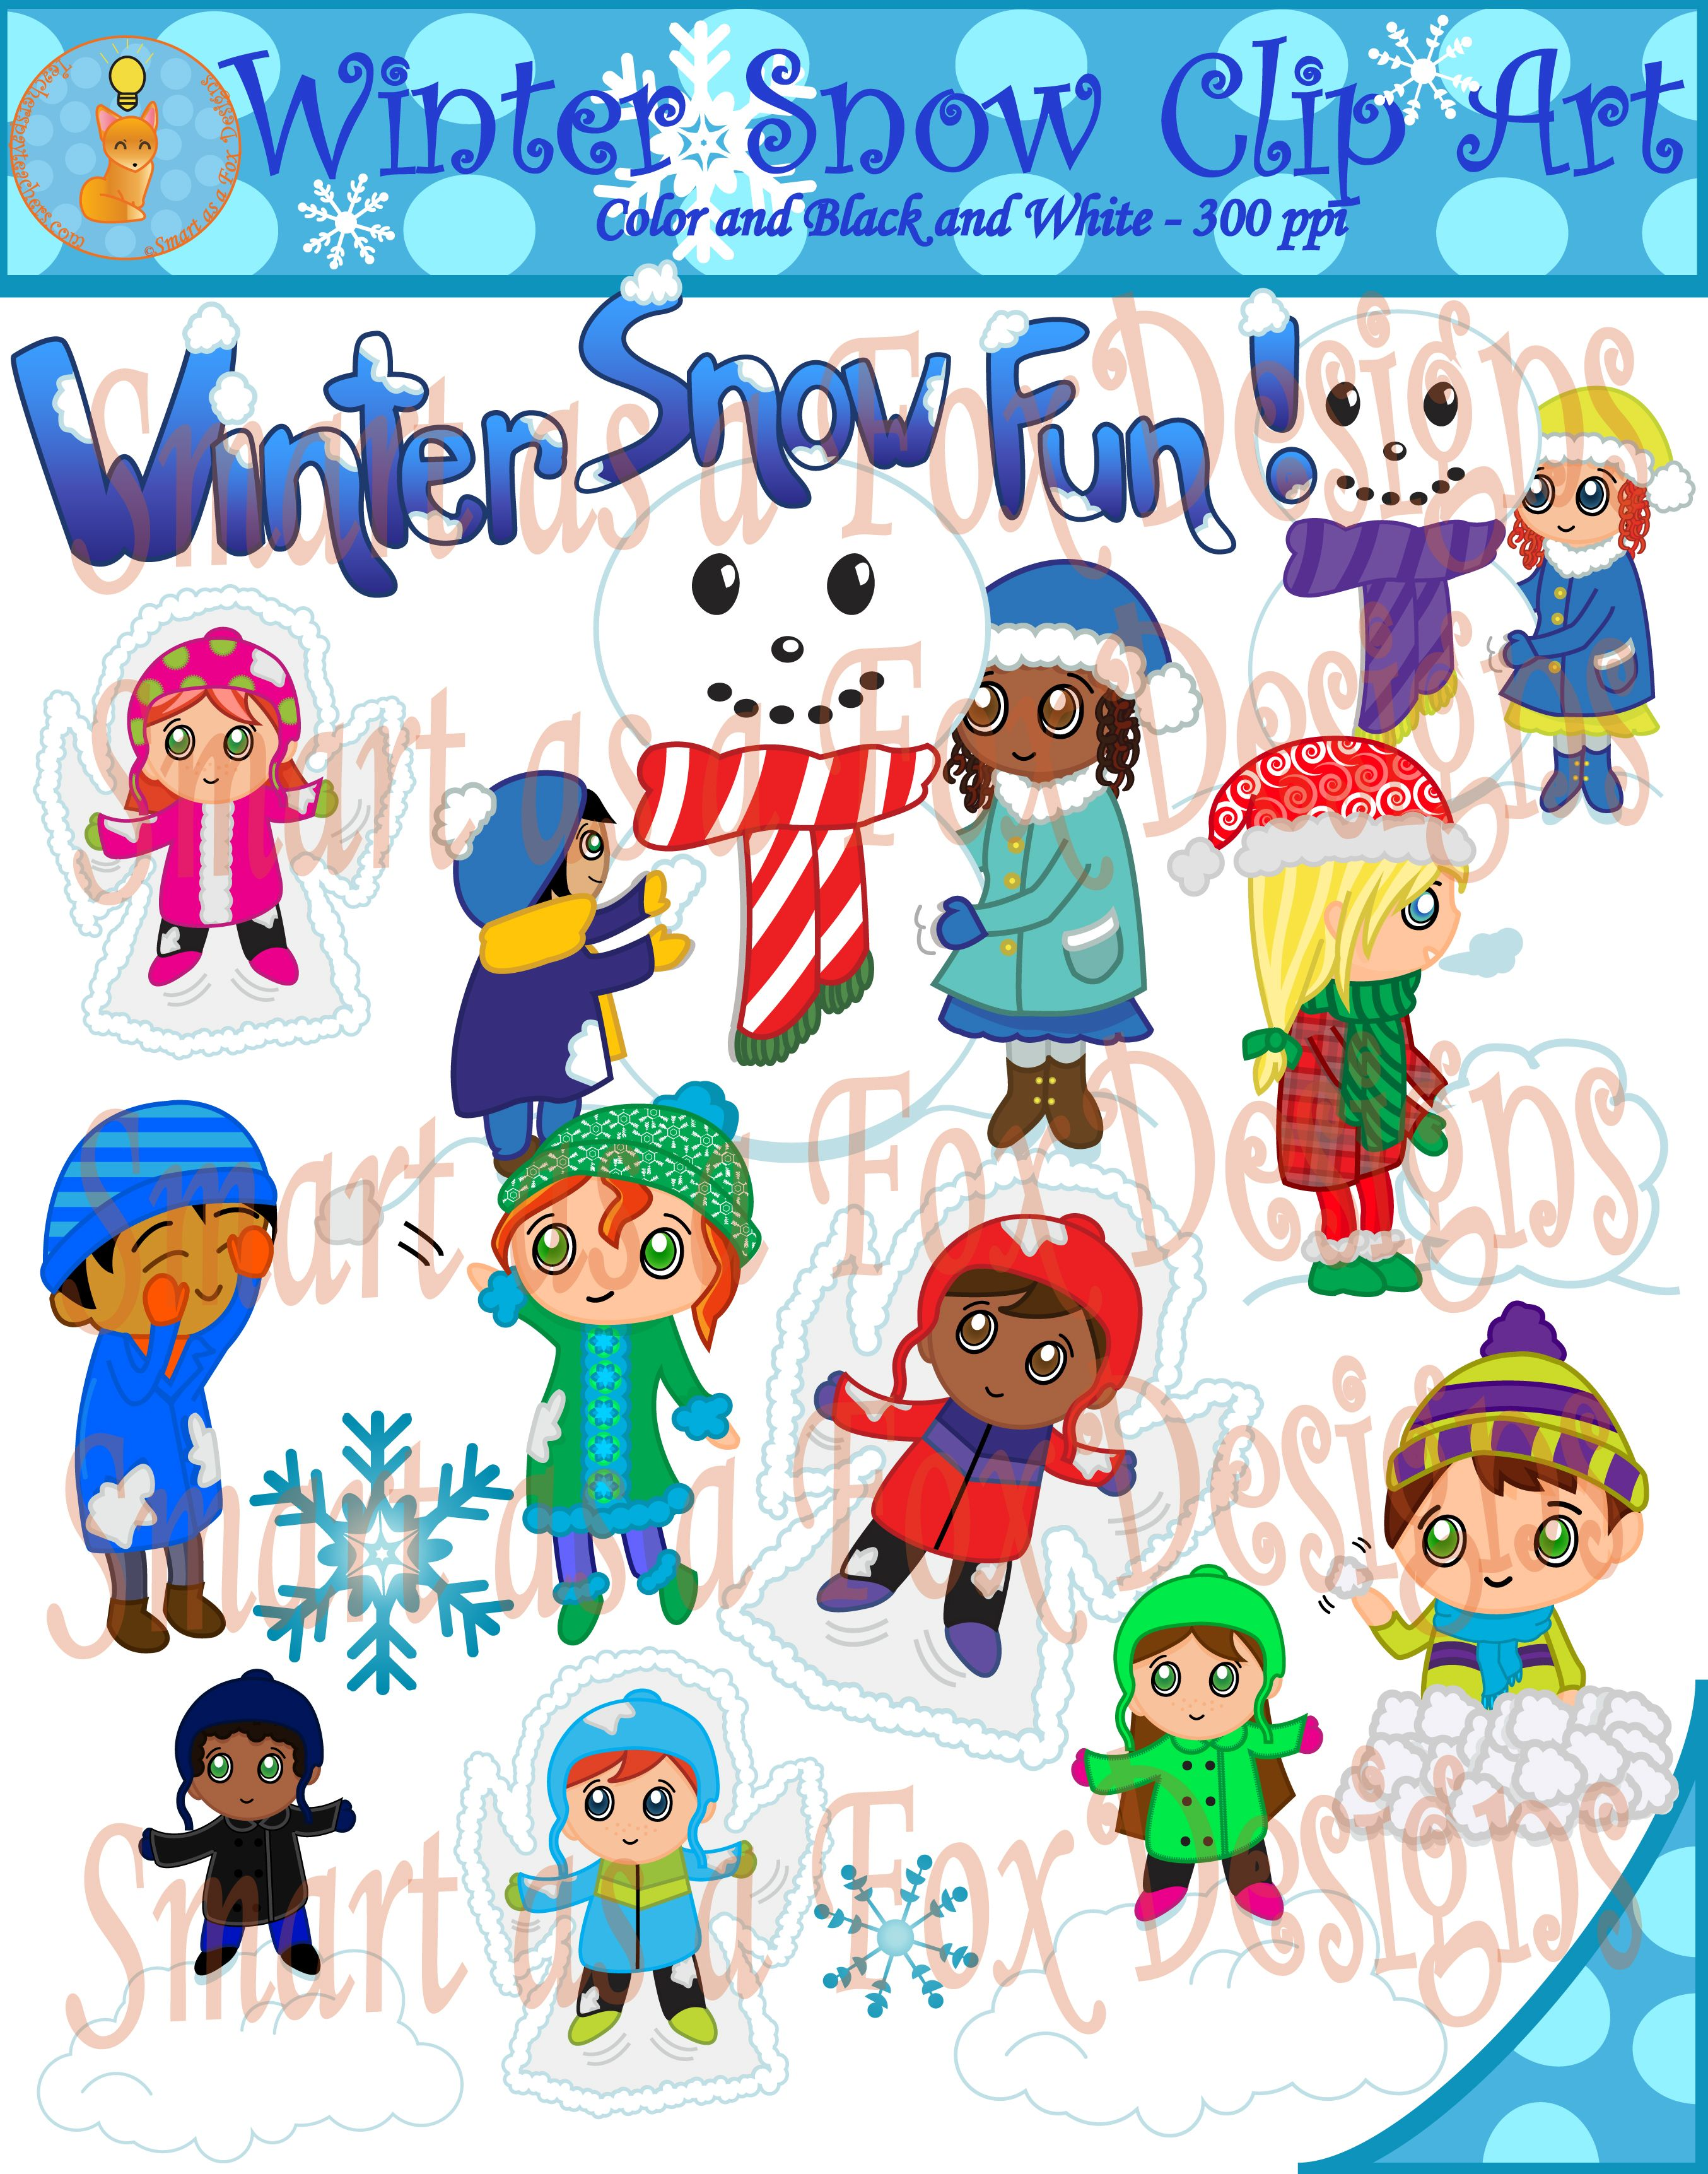 hight resolution of  winter snow fun clipart by smart as a fox designs this collection contains 41 clip art pieces 25 vividly colored images and 16 black and white